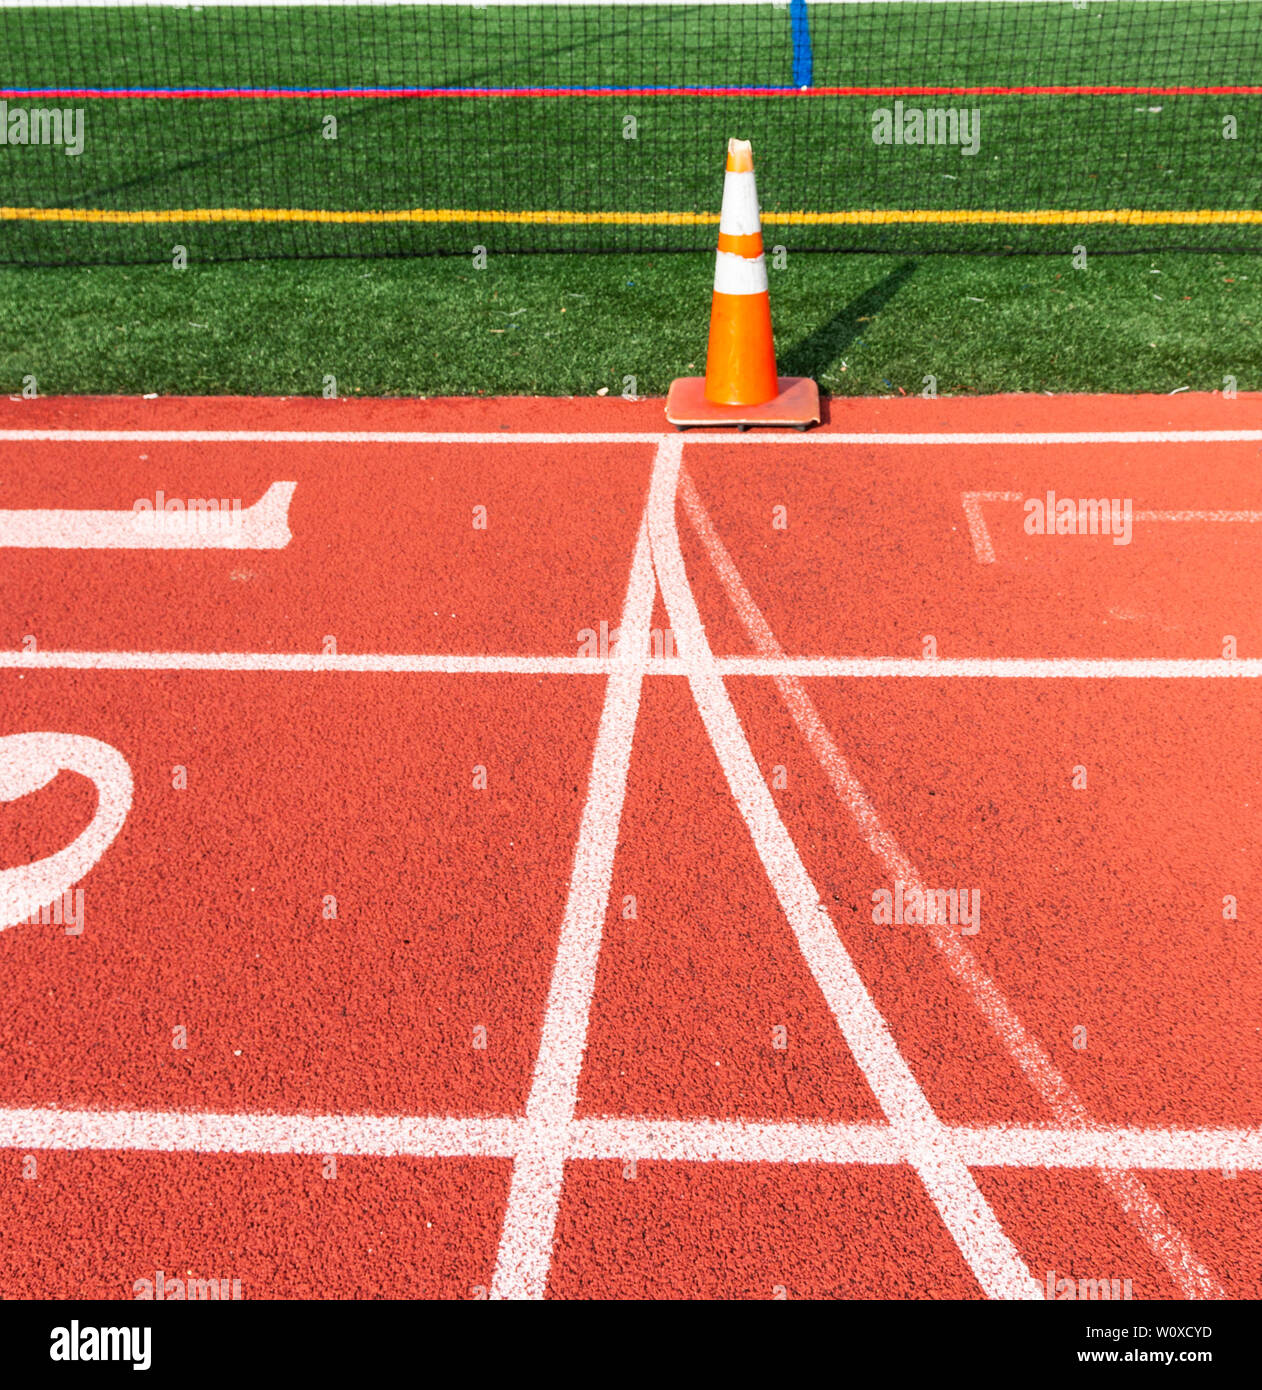 Side view showing the start and finish line marked by an orange cone on a track. Stock Photo